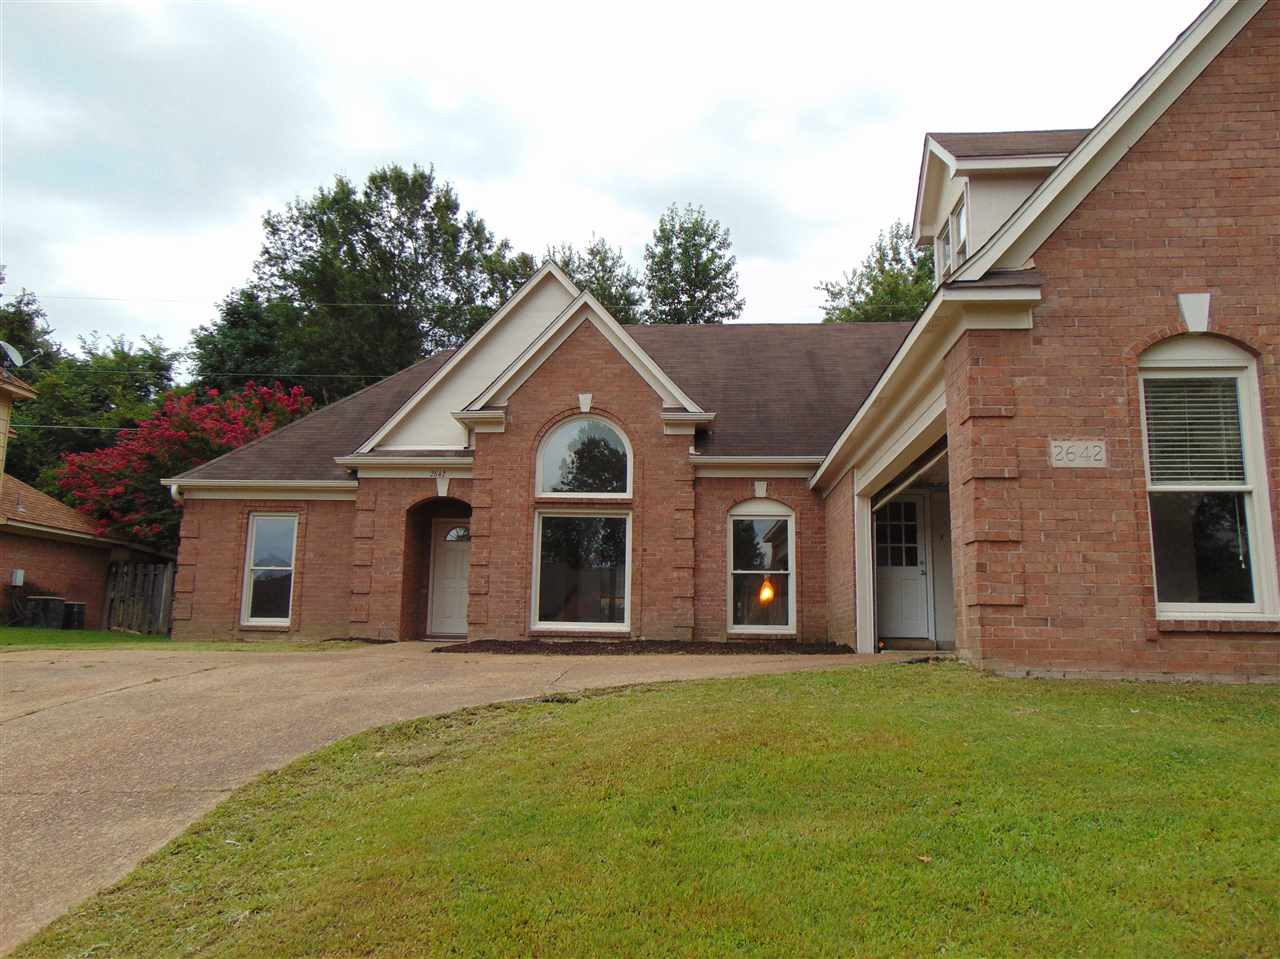 2642 Country Glade Memphis, TN 38016 - MLS #: 10031403